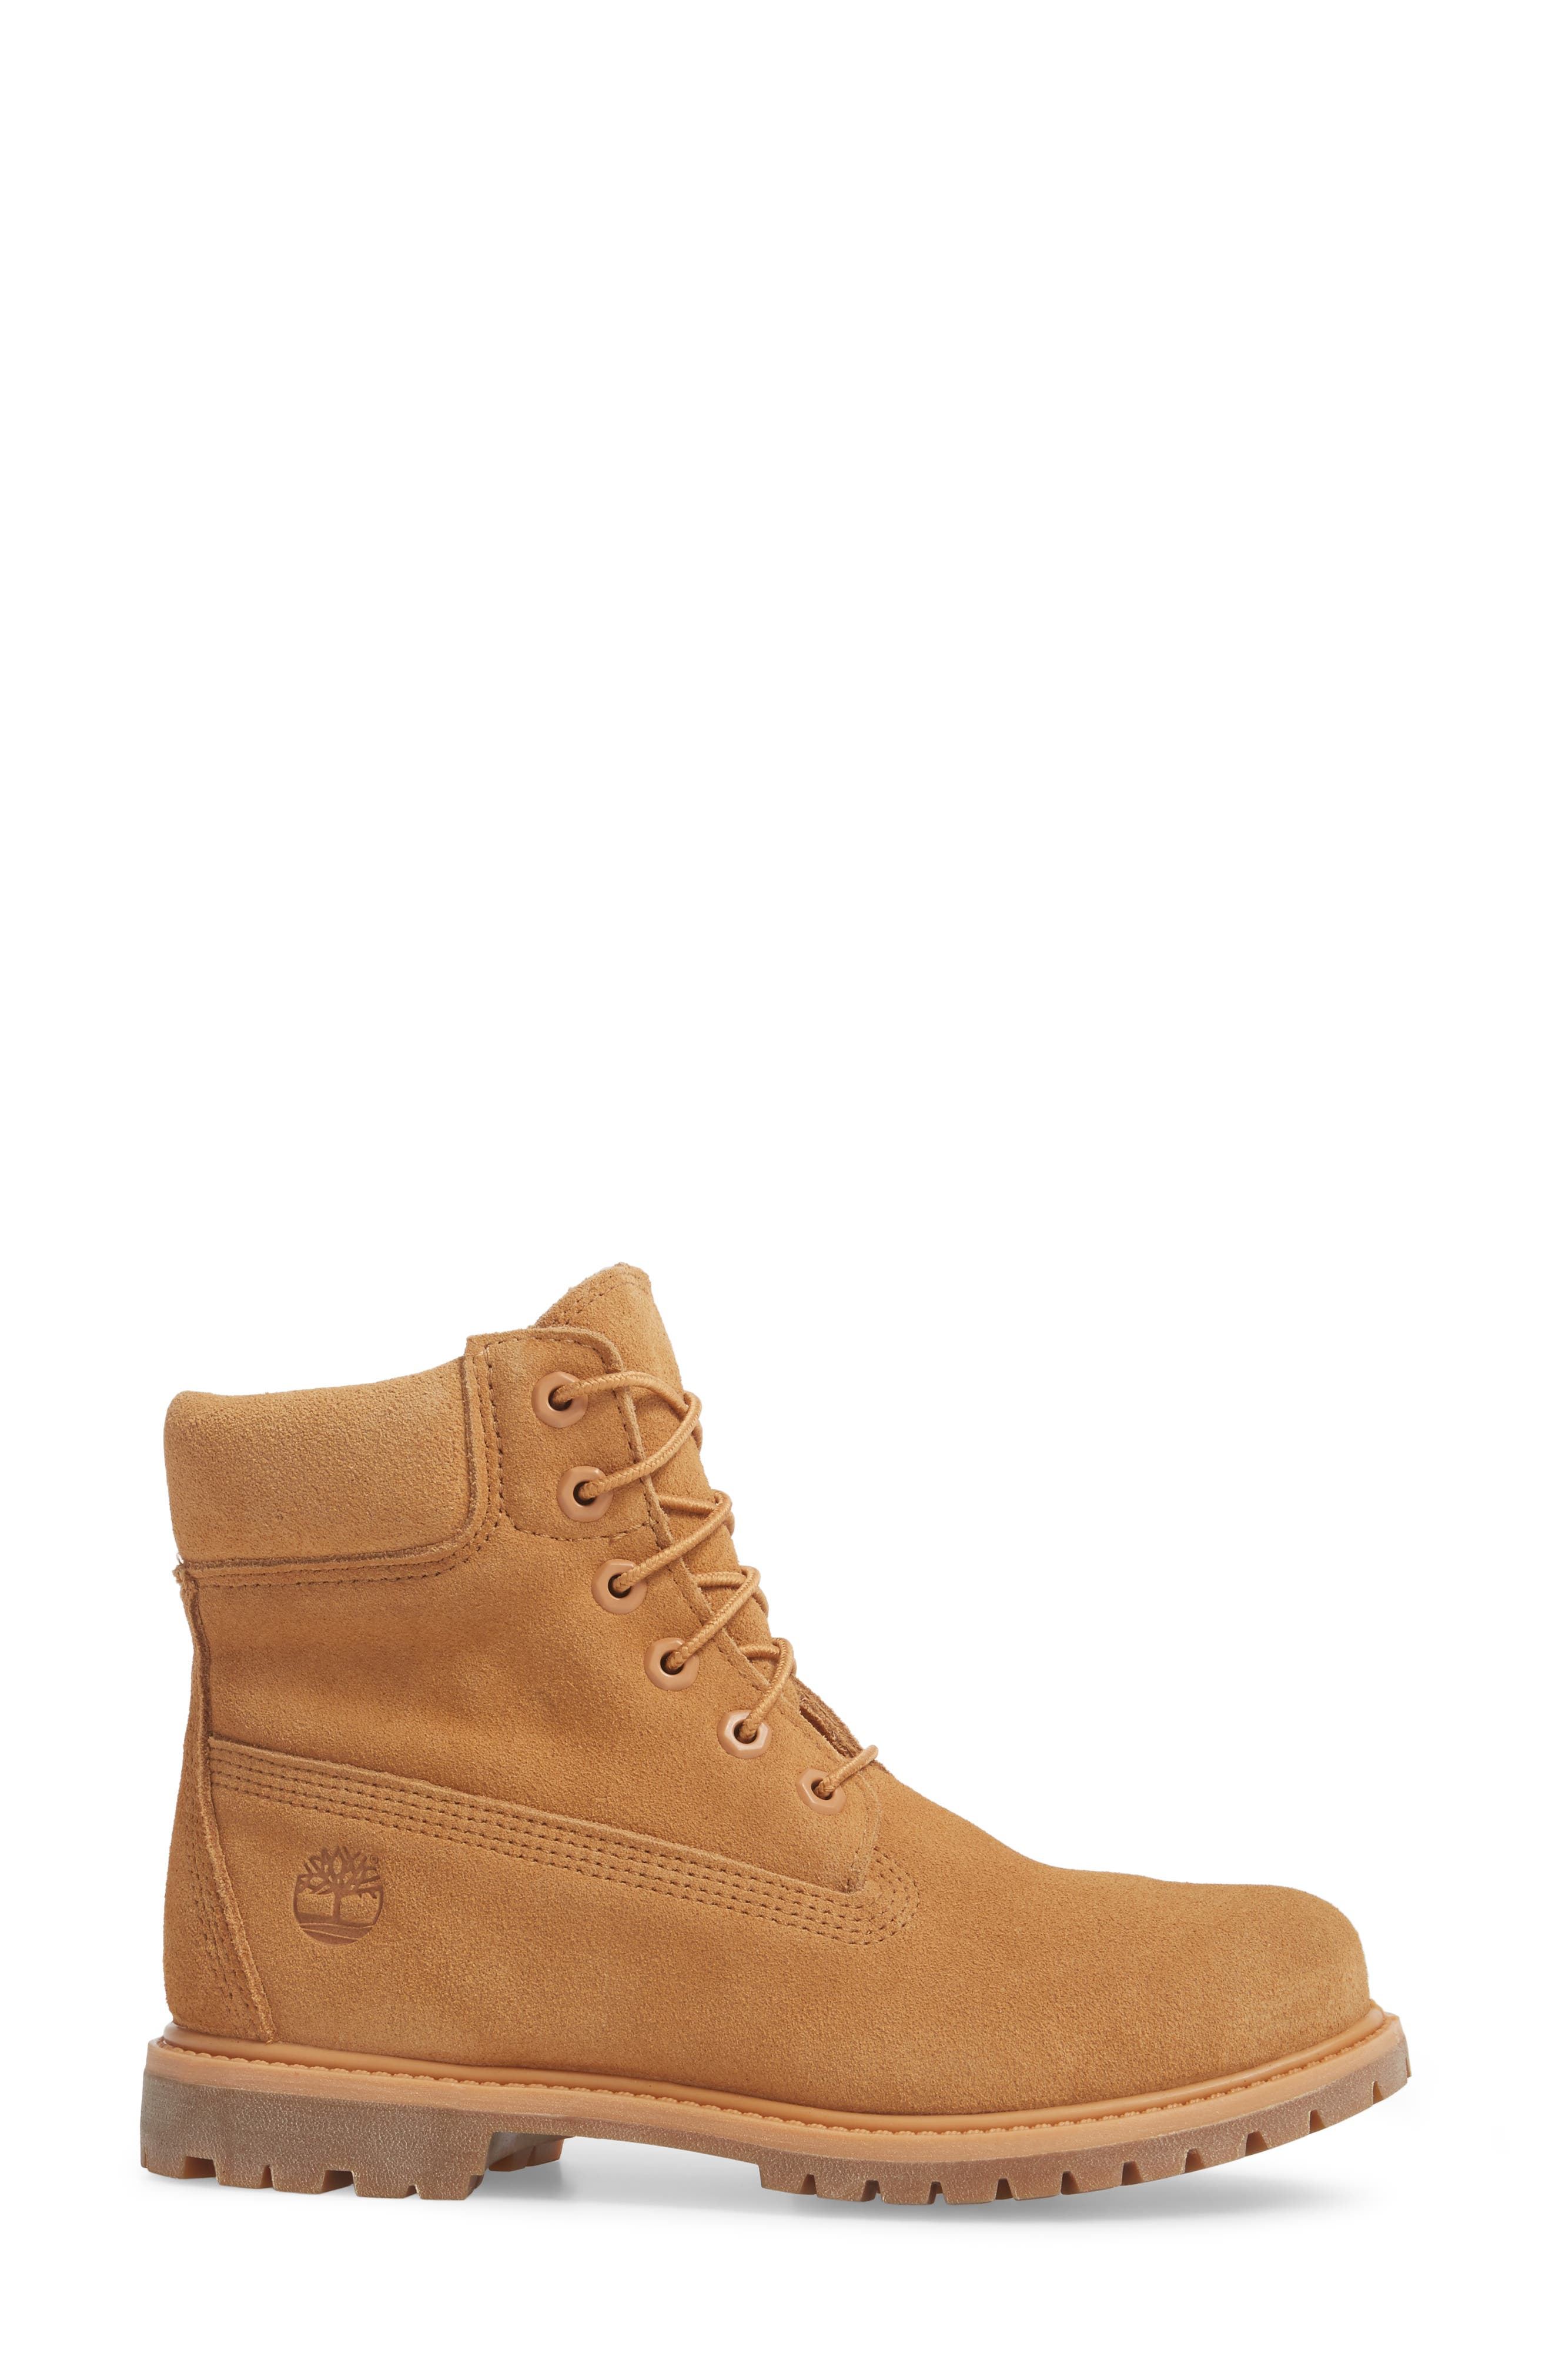 6 Inch Boot,                             Alternate thumbnail 3, color,                             230